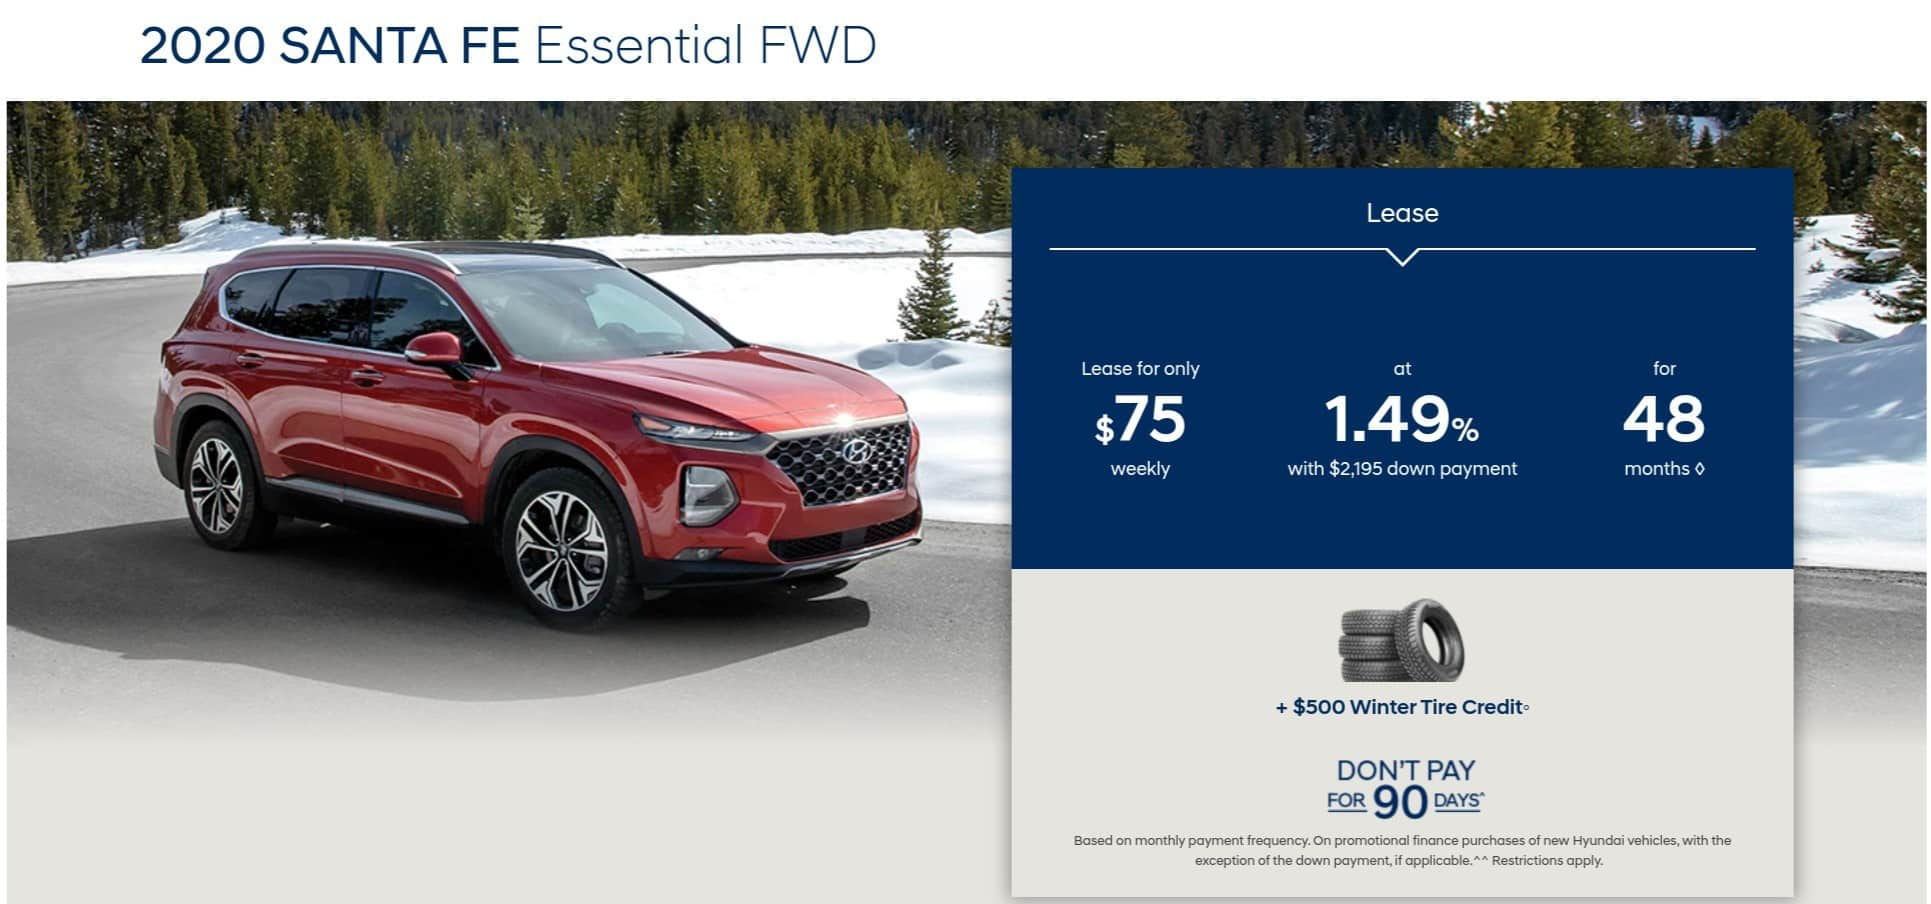 2020 Hyundai Santa Fe is one of the best new car deals in Canada